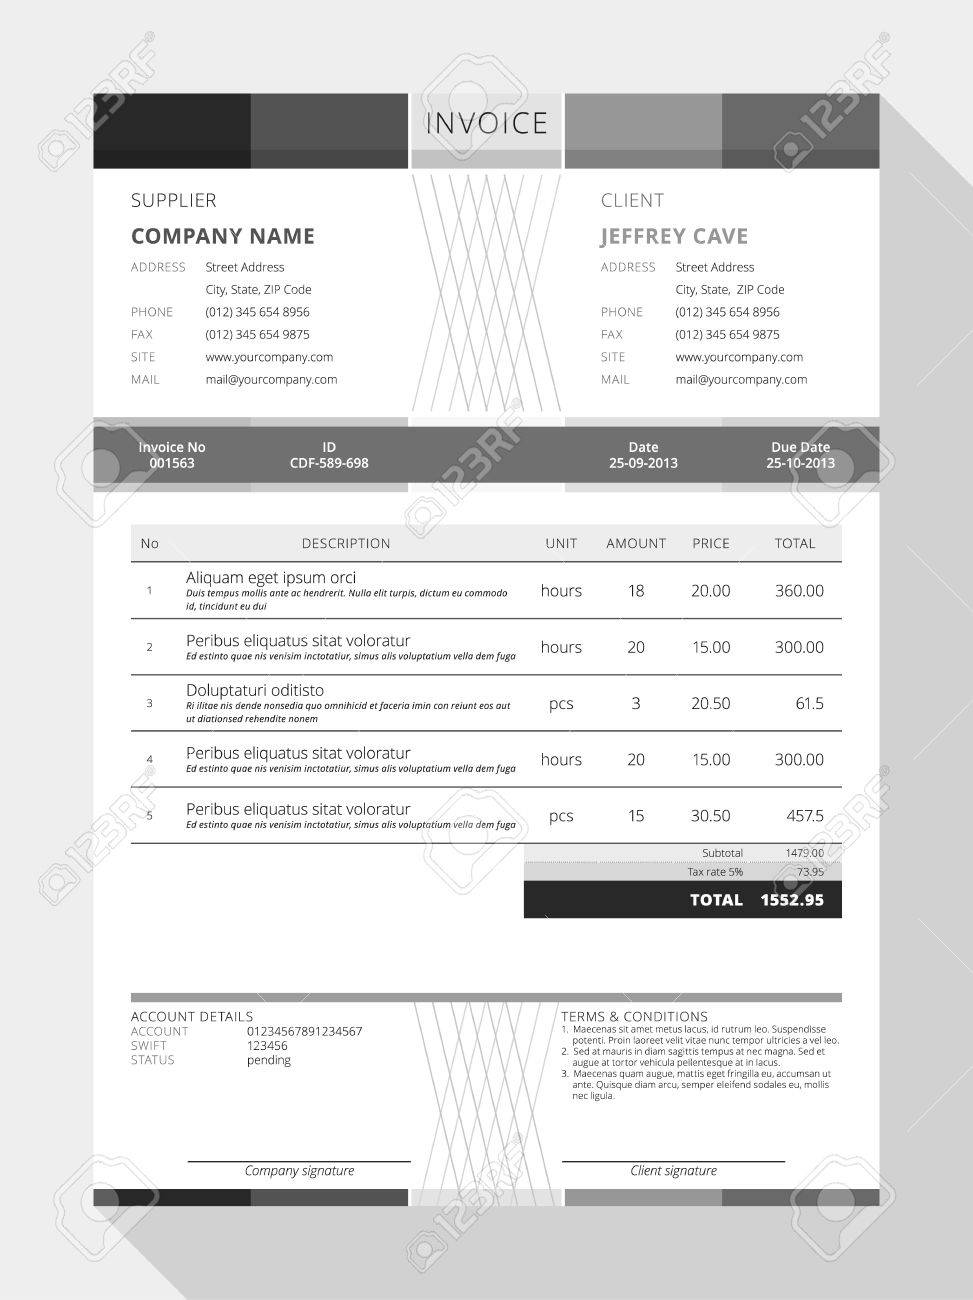 Reliefworkersus  Unusual Design An Invoice  Professional Graphic Design Invoice  With Handsome Vector Customizable Invoice Form Template Design Vector   Design An Invoice With Endearing Invoicing For Mac Also Prepare An Invoice In Addition Excel  Invoice Template Free Download And Best Invoice Format As Well As Excel Tax Invoice Template Additionally Mac Invoicing From Happytomco With Reliefworkersus  Handsome Design An Invoice  Professional Graphic Design Invoice  With Endearing Vector Customizable Invoice Form Template Design Vector   Design An Invoice And Unusual Invoicing For Mac Also Prepare An Invoice In Addition Excel  Invoice Template Free Download From Happytomco